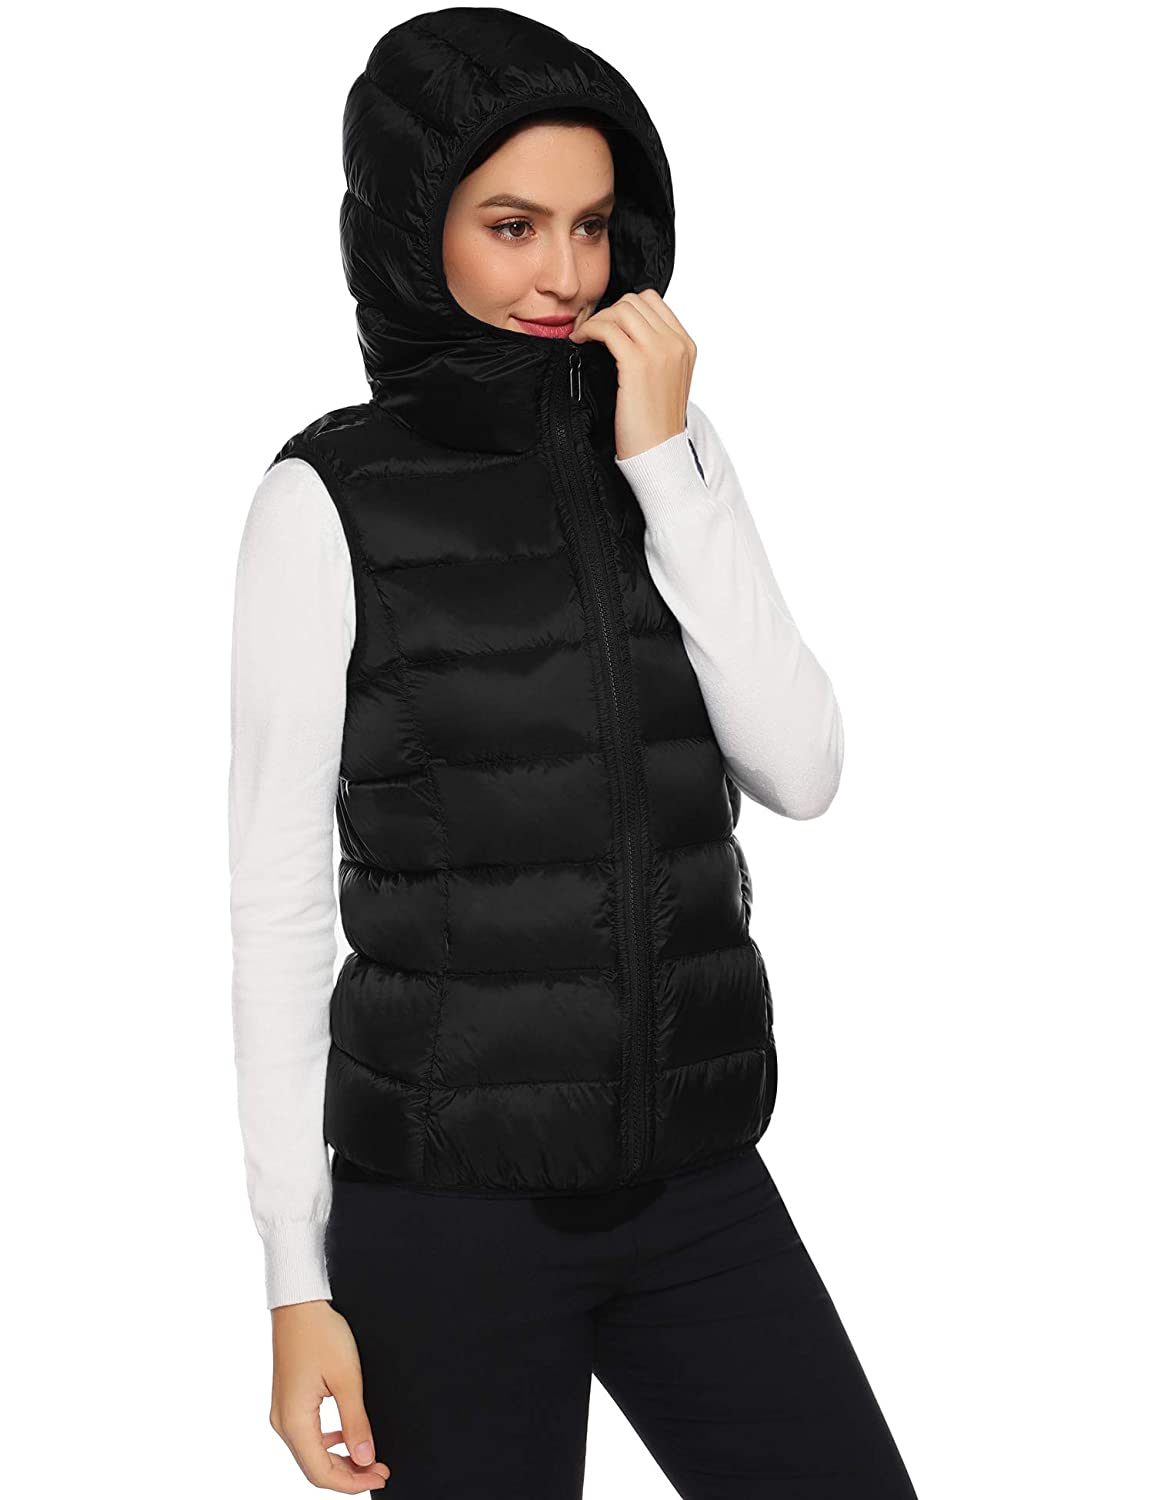 Hawiton Womens Hooded Packable Ultra Lightweight Down Vest Outdoor Puffer Vest Down Gilet Coat